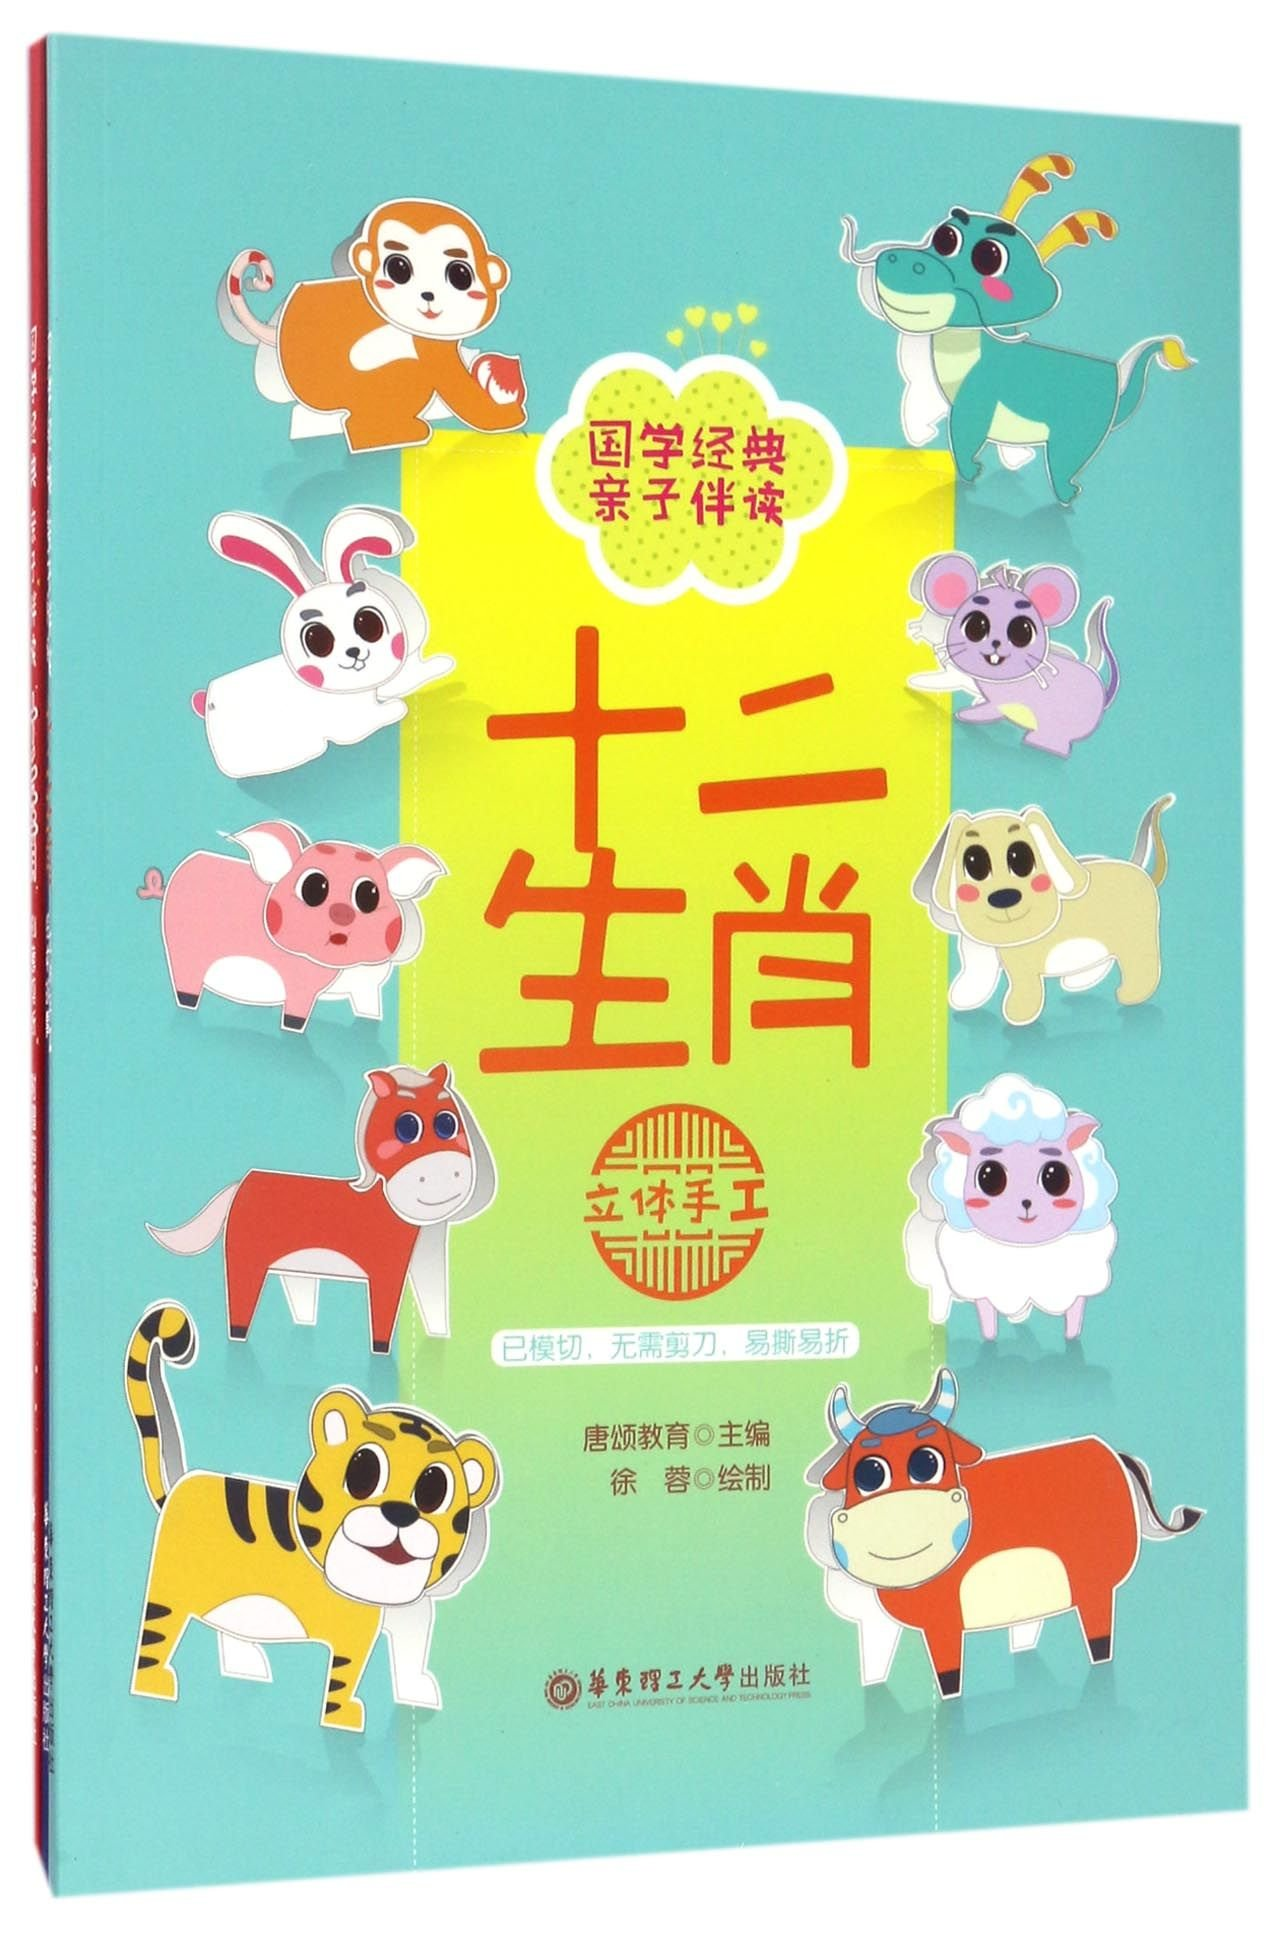 Class of Chinese Studies for Parents-Children Reading (3 Books in Total of Chinese Zodiacs) (Chinese Edition) pdf epub